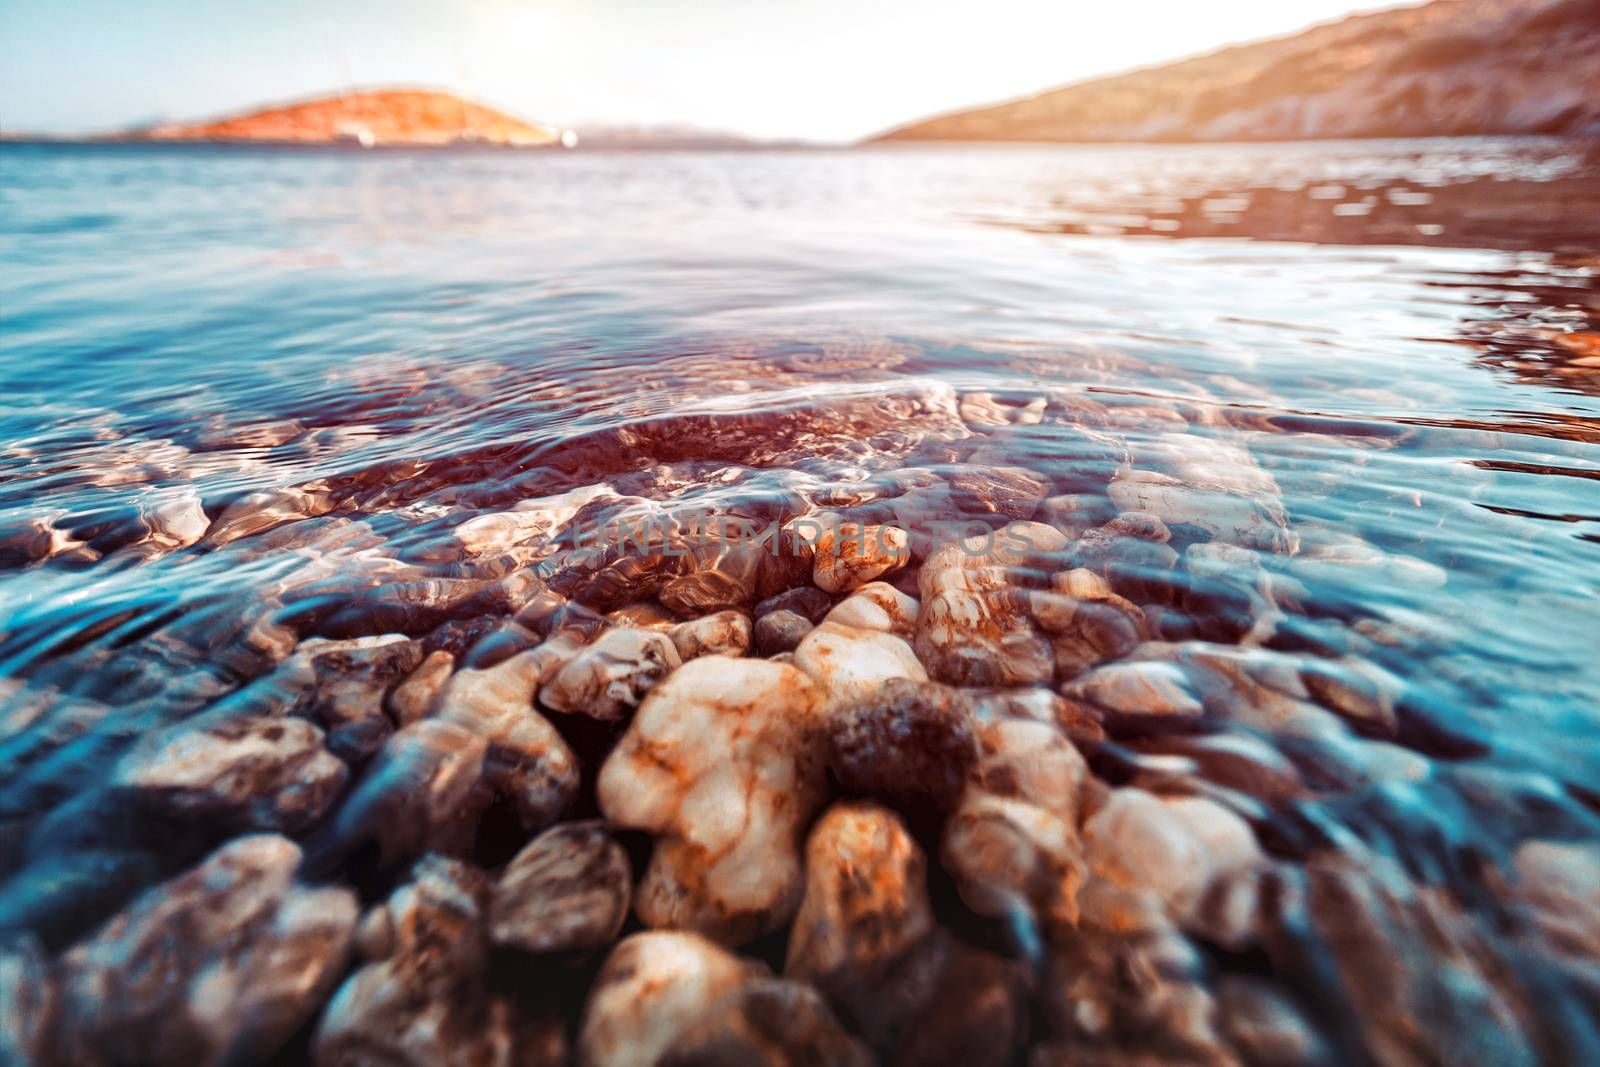 Beauty of underwater nature, the stony bottom is seen through the clear water of the Mediterranean Sea, summer holidays in Greece